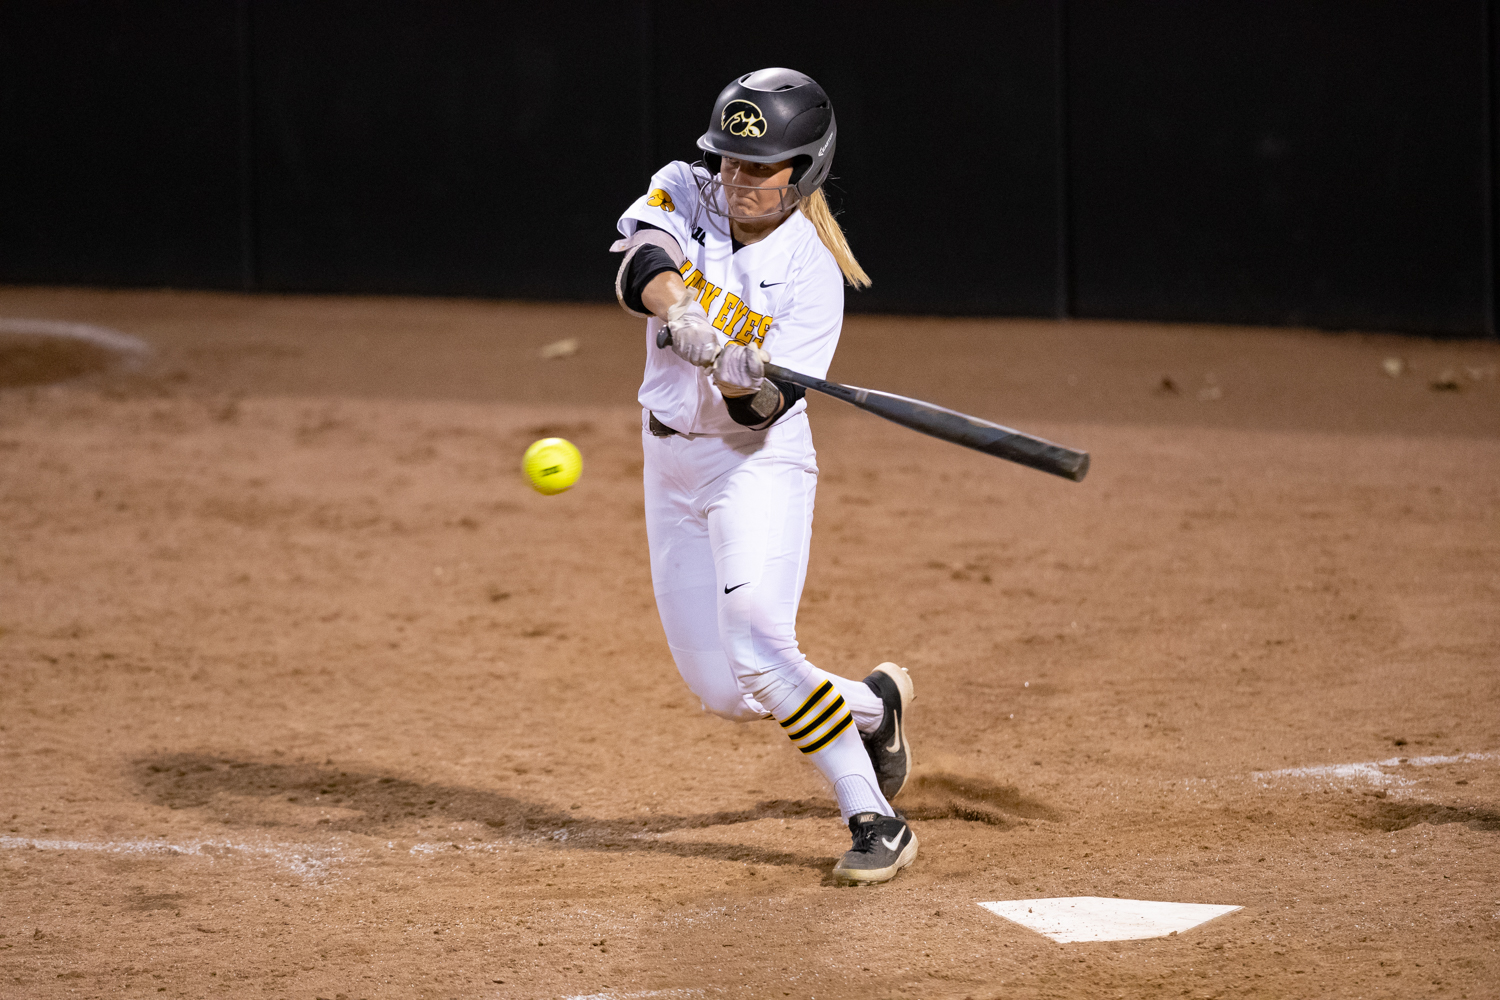 Iowa's Havyn Monteer winds up to connect on a pitch during a softball game against Western Illinois on Wednesday, Mar. 27, 2019. The Fighting Leathernecks defeated the Hawkeyes 10-1.